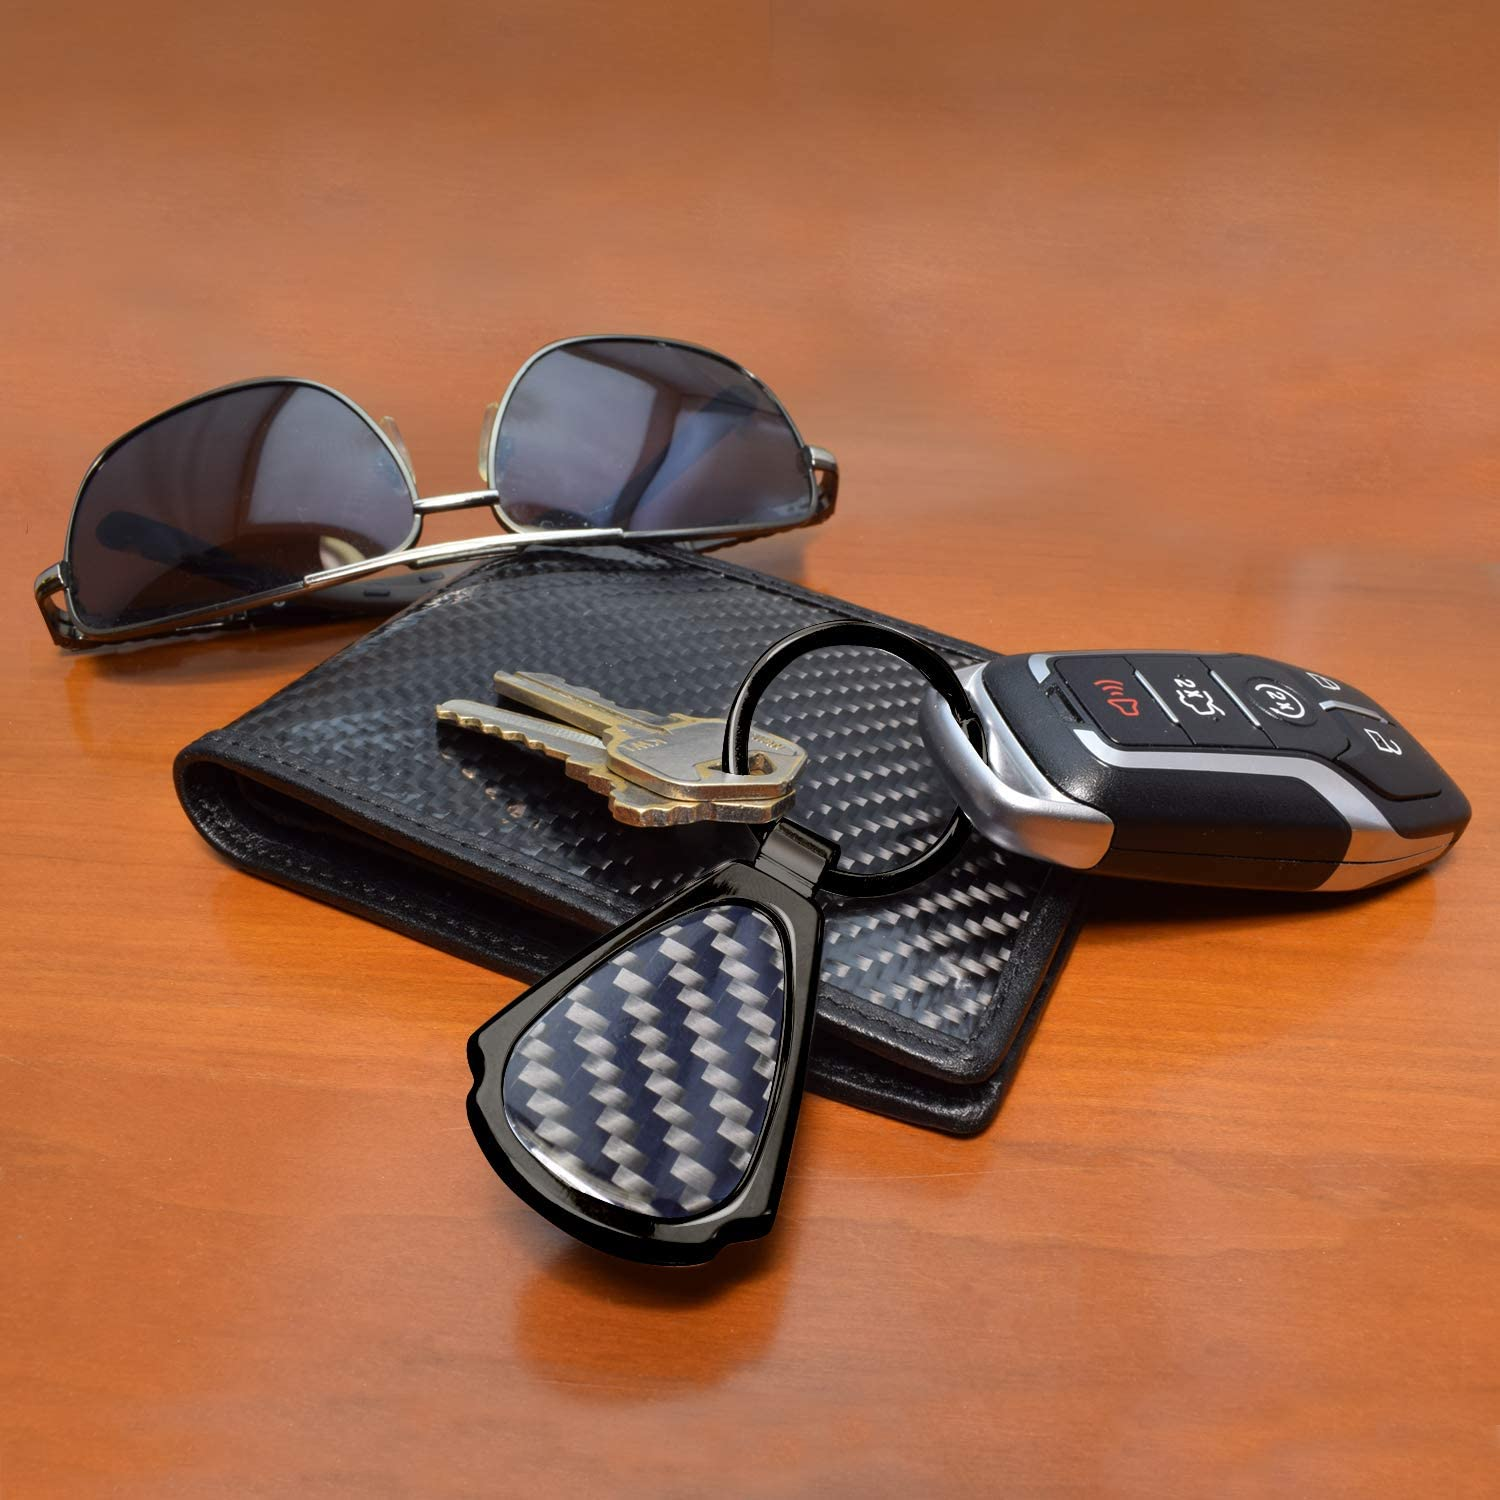 iPick Image for Chrysler Pacifica Real Black Carbon Fiber Gunmetal Black Metal Teardrop Key Chain